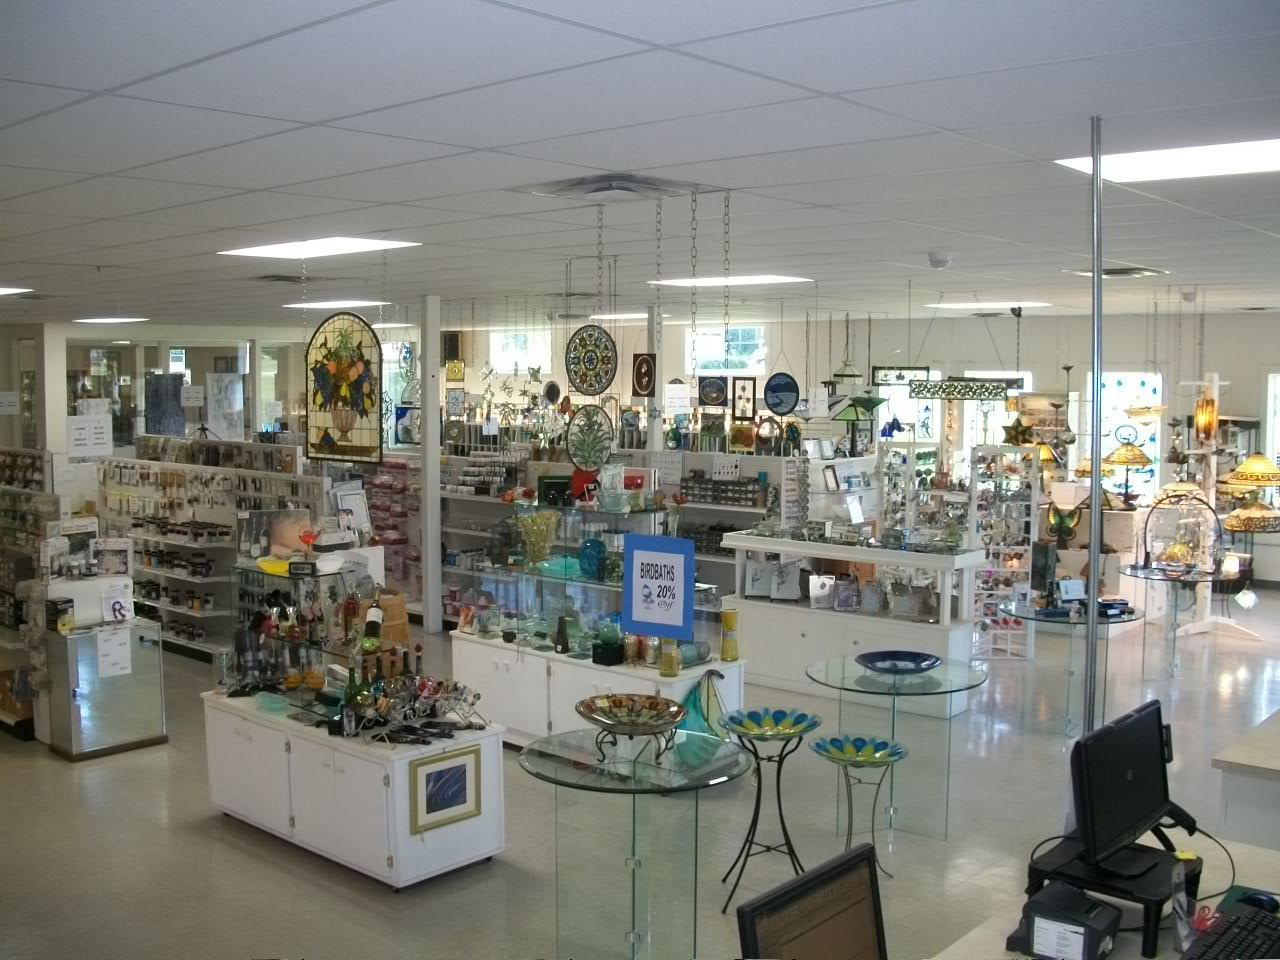 View of the showroom from the front entry way